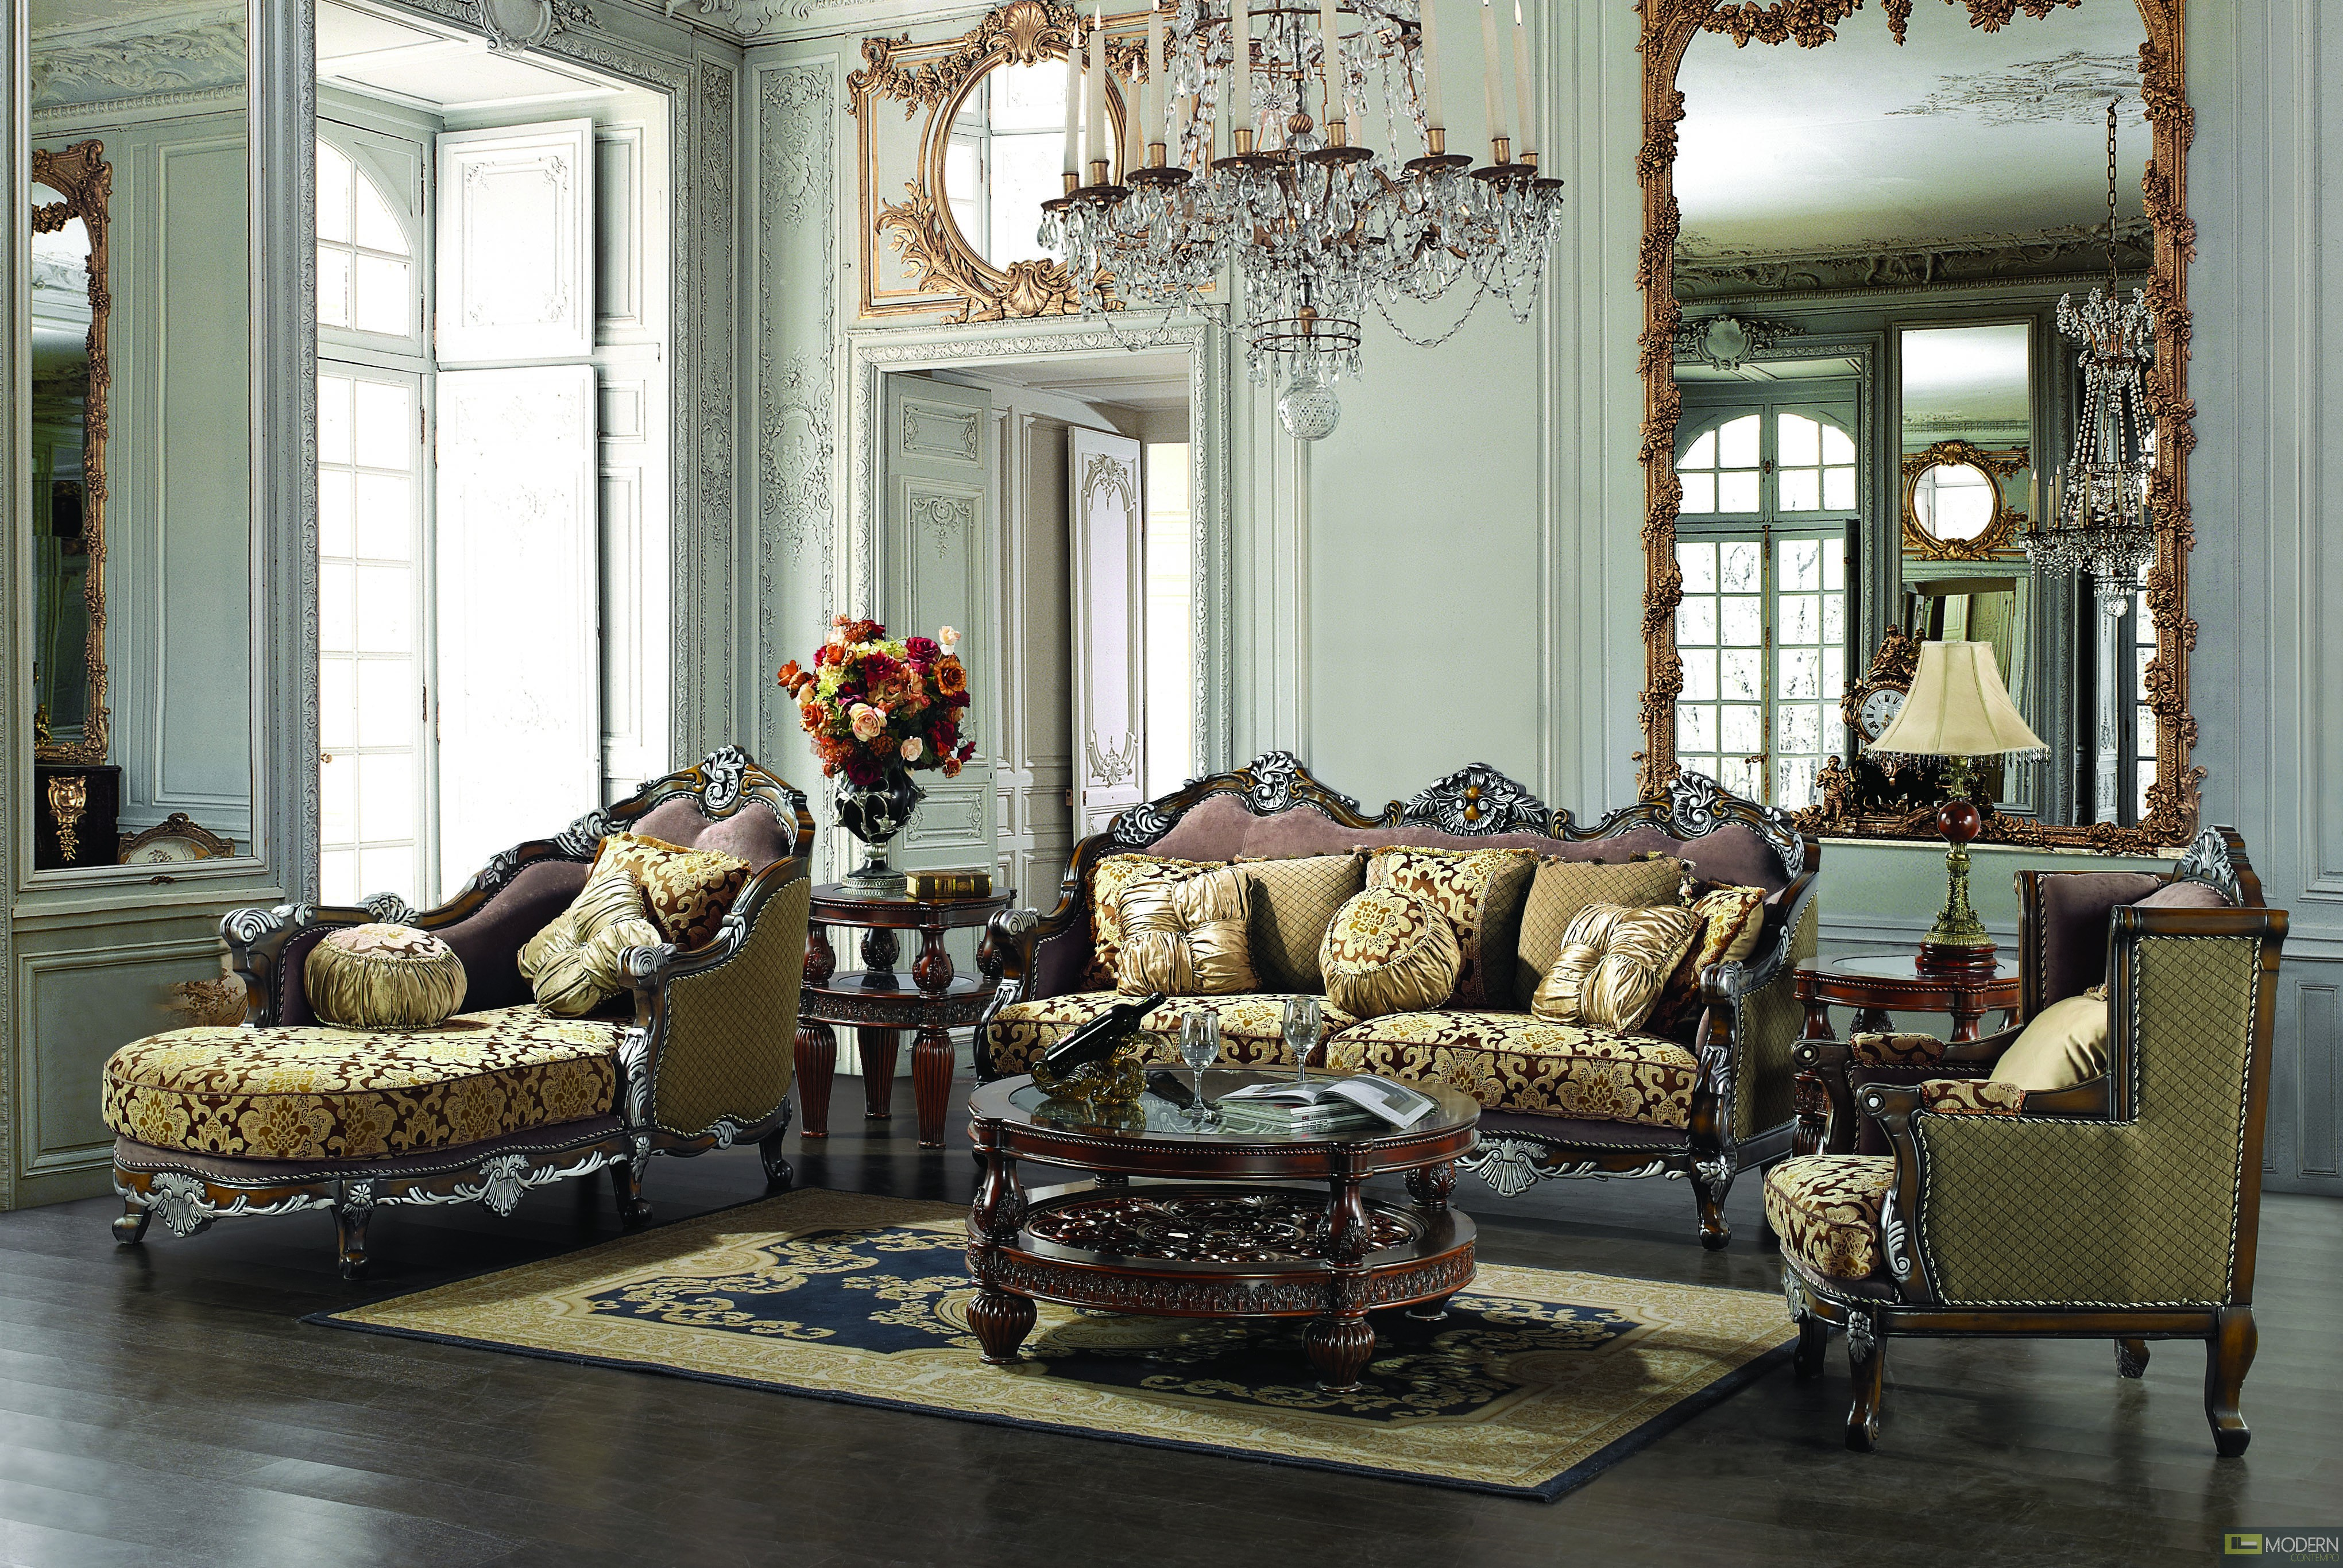 Home Traditional Upholstery French European Design Formal Living Room